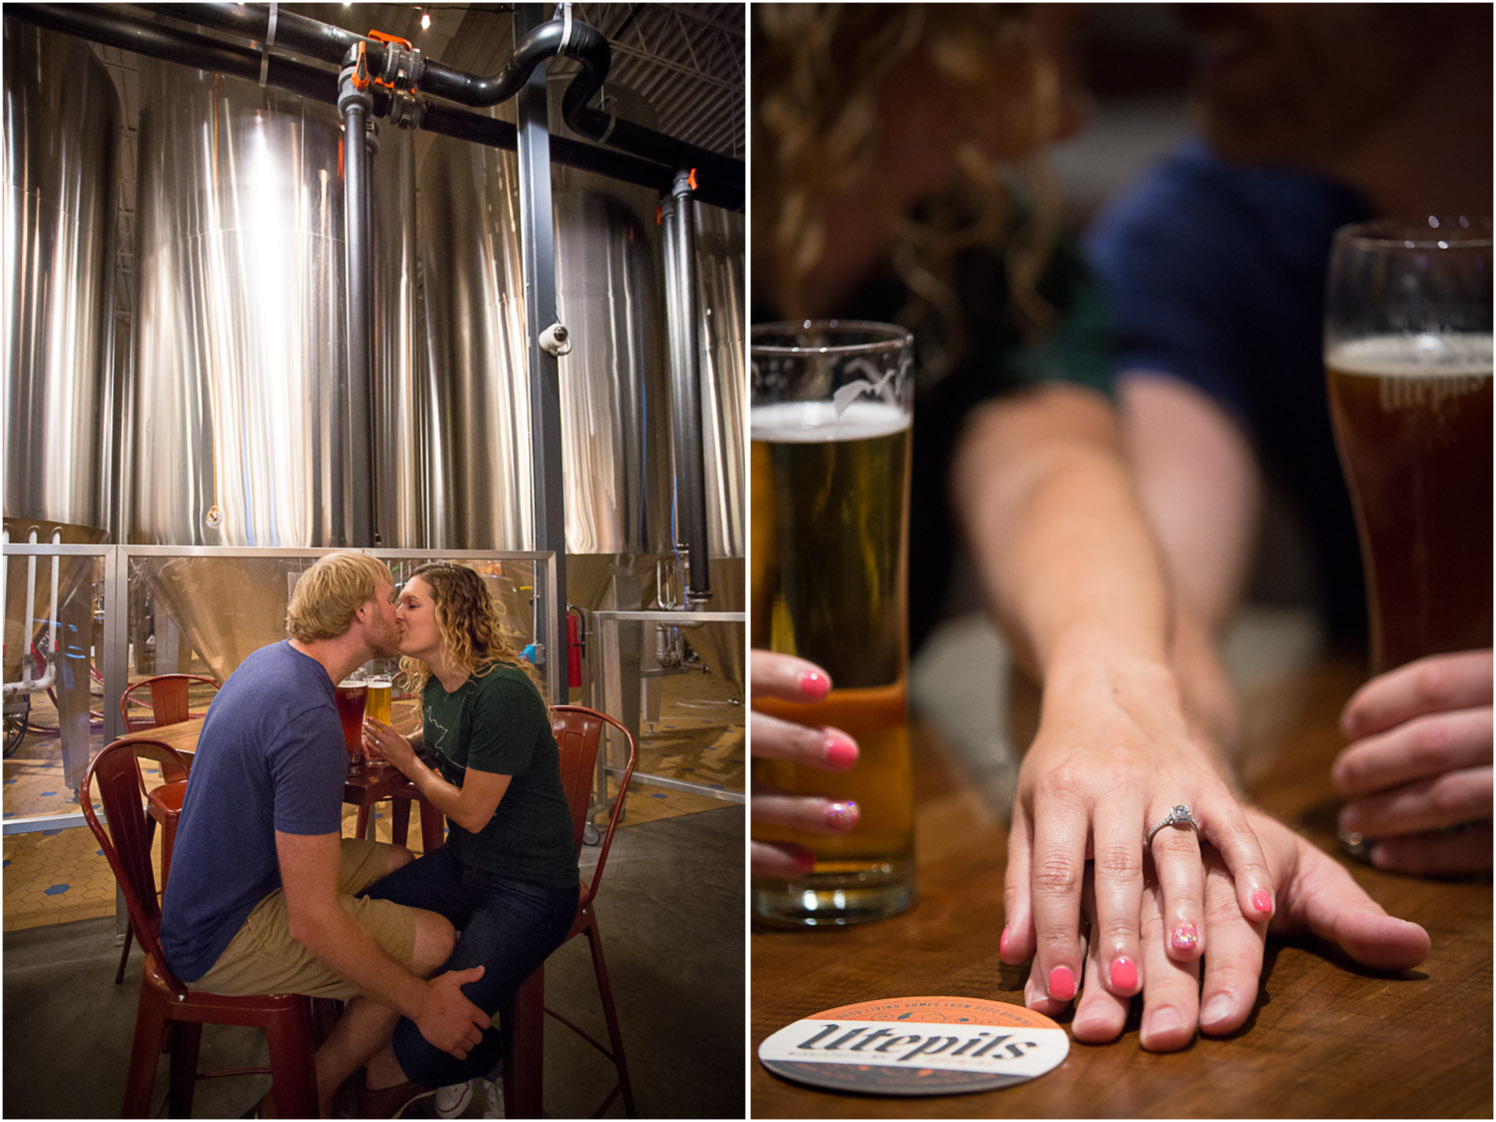 These two like to try new beers at different breweries around the Twin Cities. So after taking some photos at a local park, we headed to Utepils for some images in their tasting room.